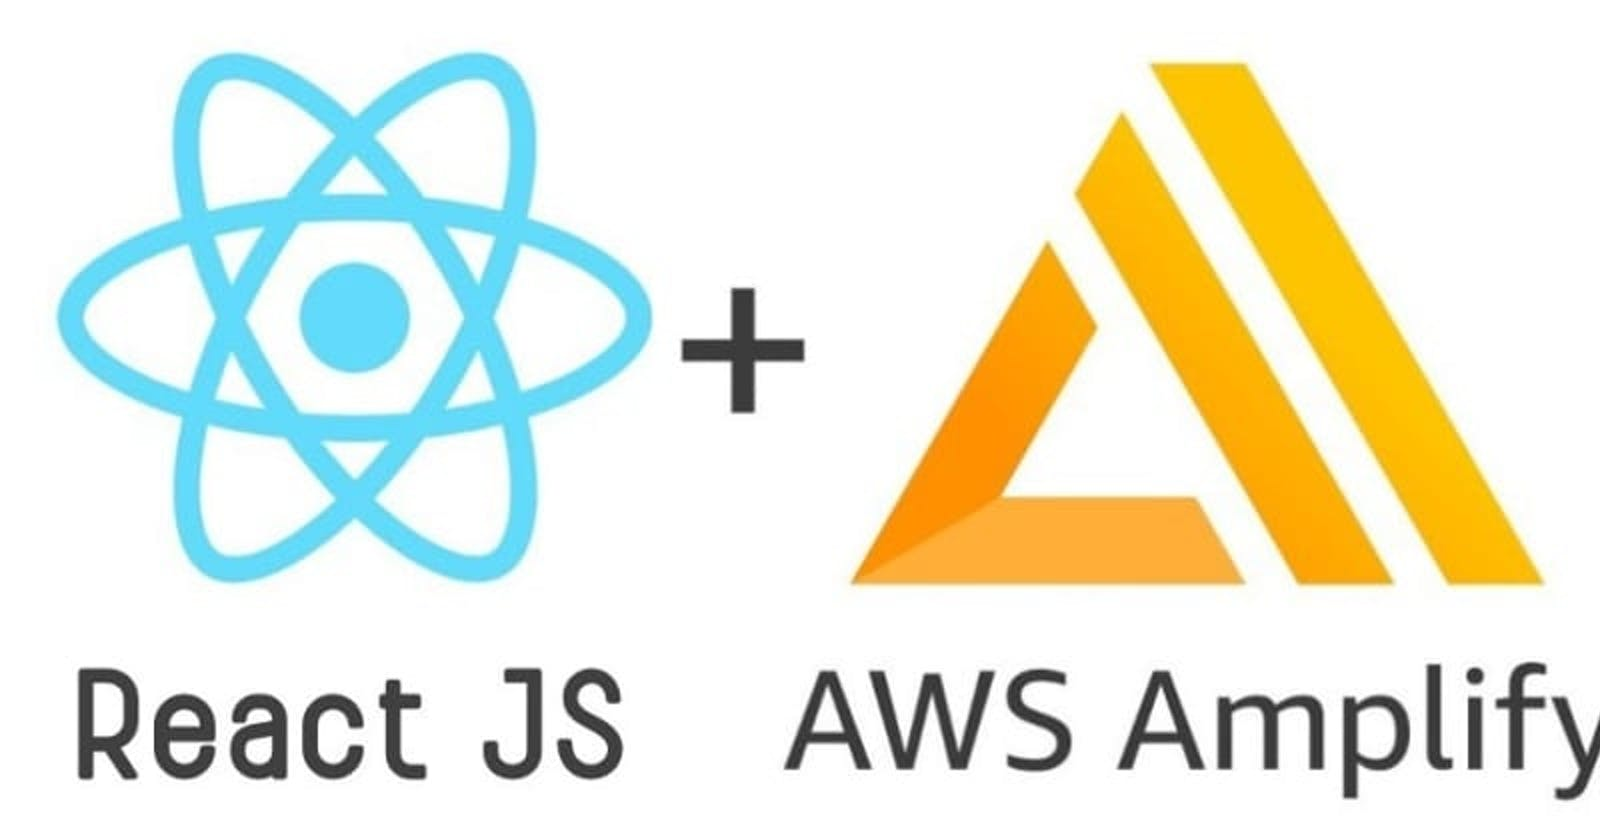 Adding authentication to React App using AWS Amplify and Cognito